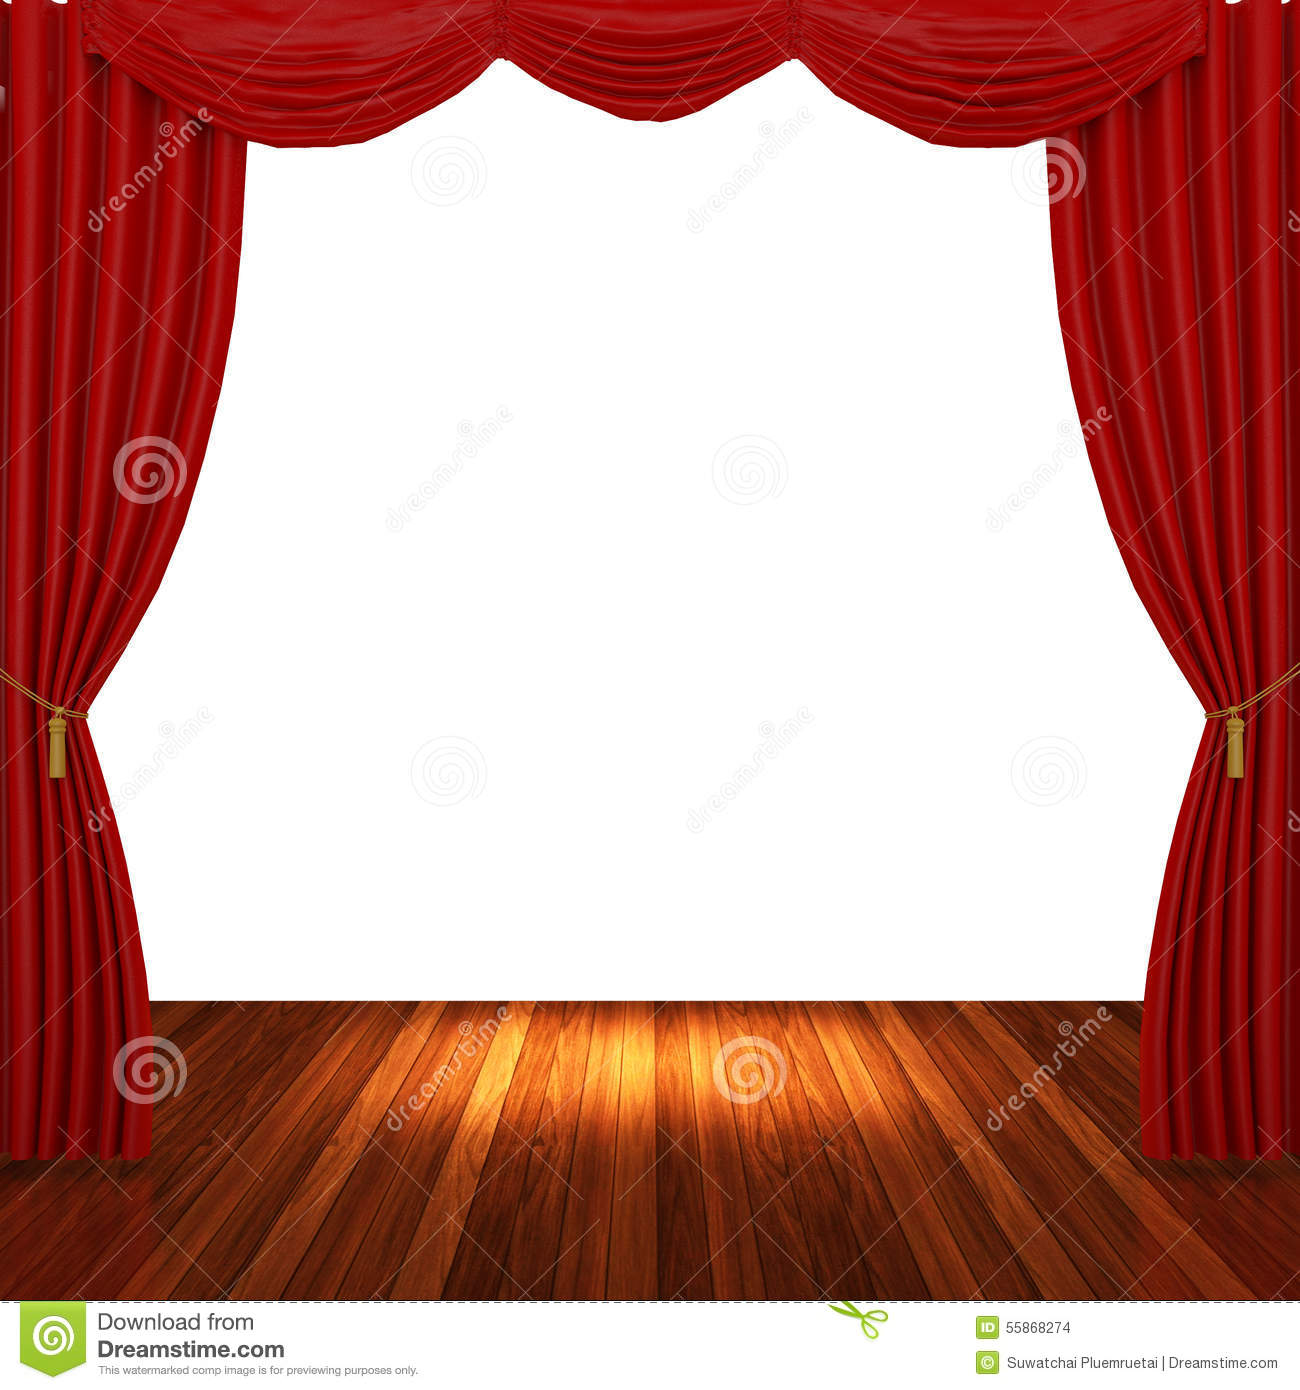 Stage curtains spotlight - Royalty Free Stock Photo Download Stage With Red Curtains And Spotlight